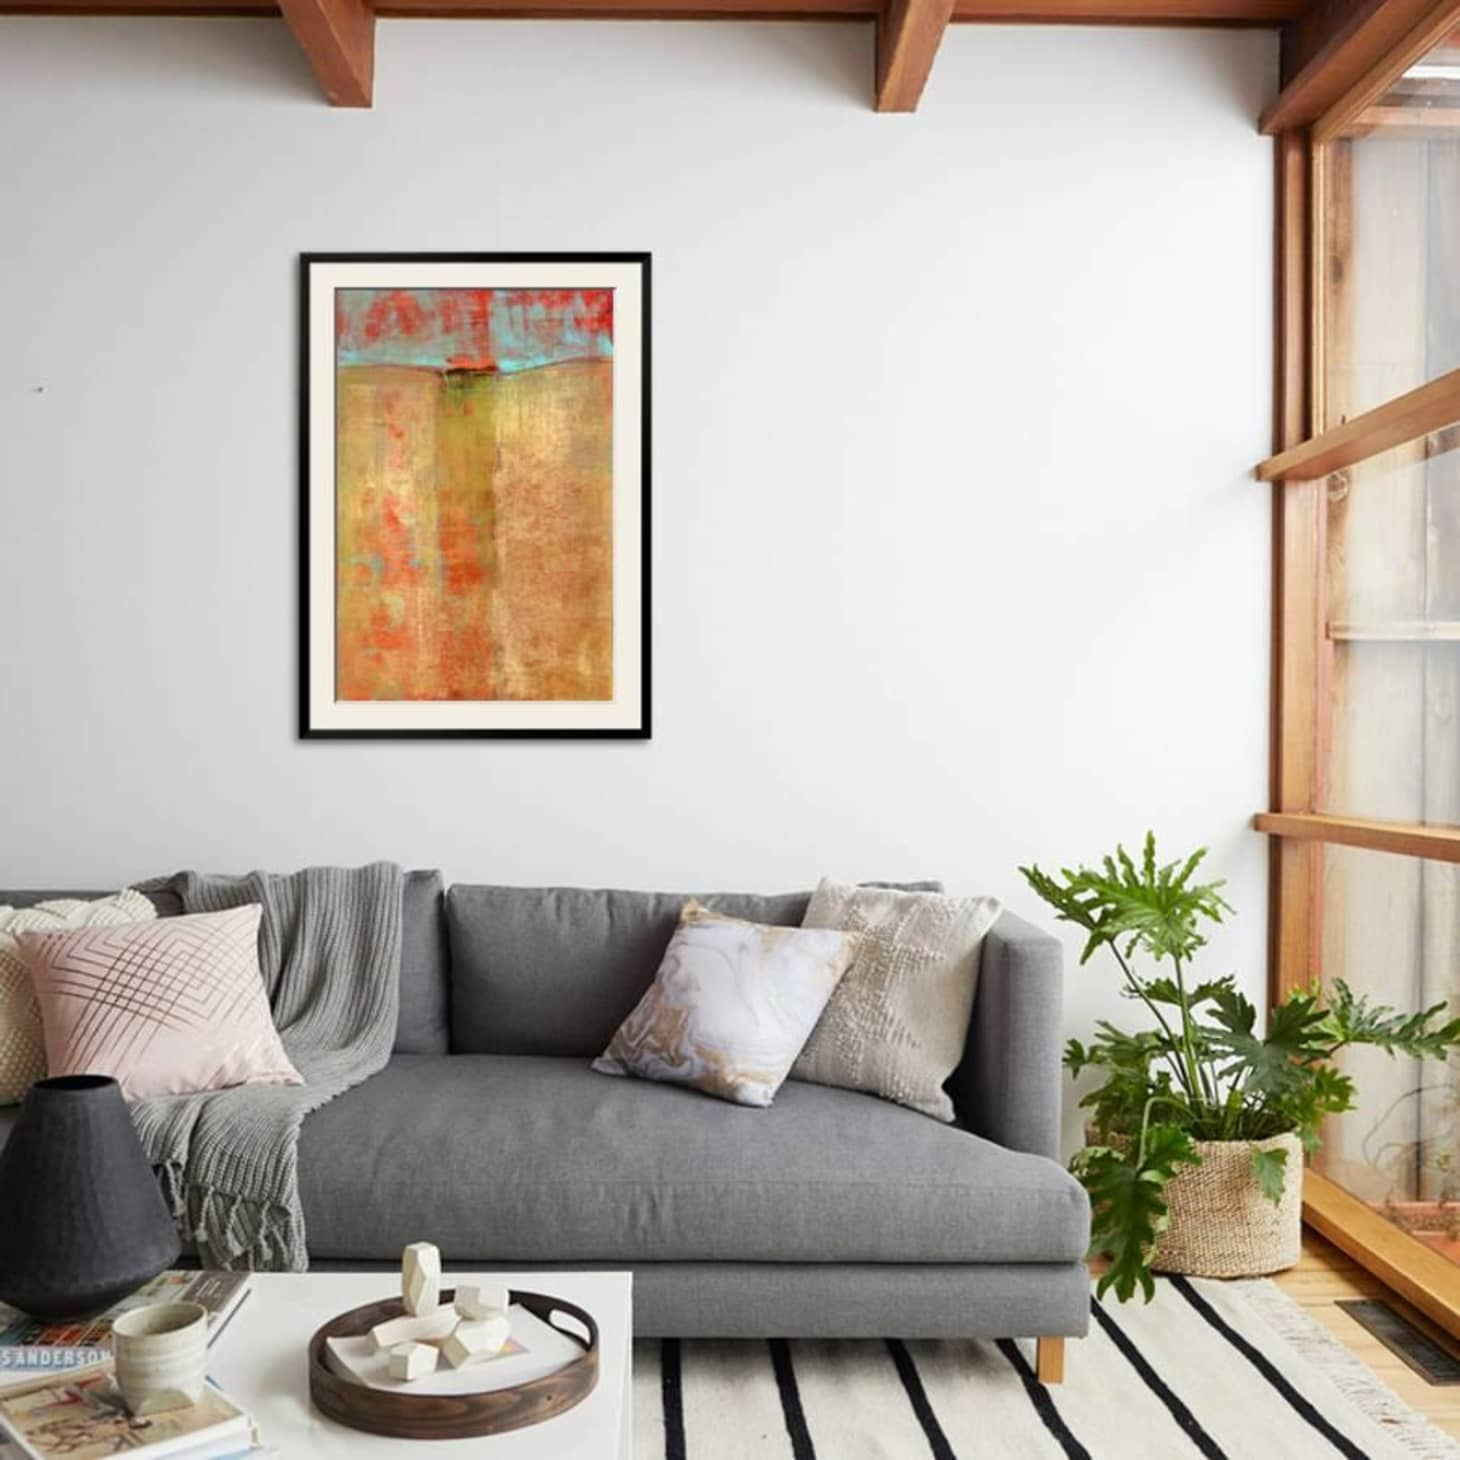 Oversized Art Prints The Best Places To Buy Big Art Apartment